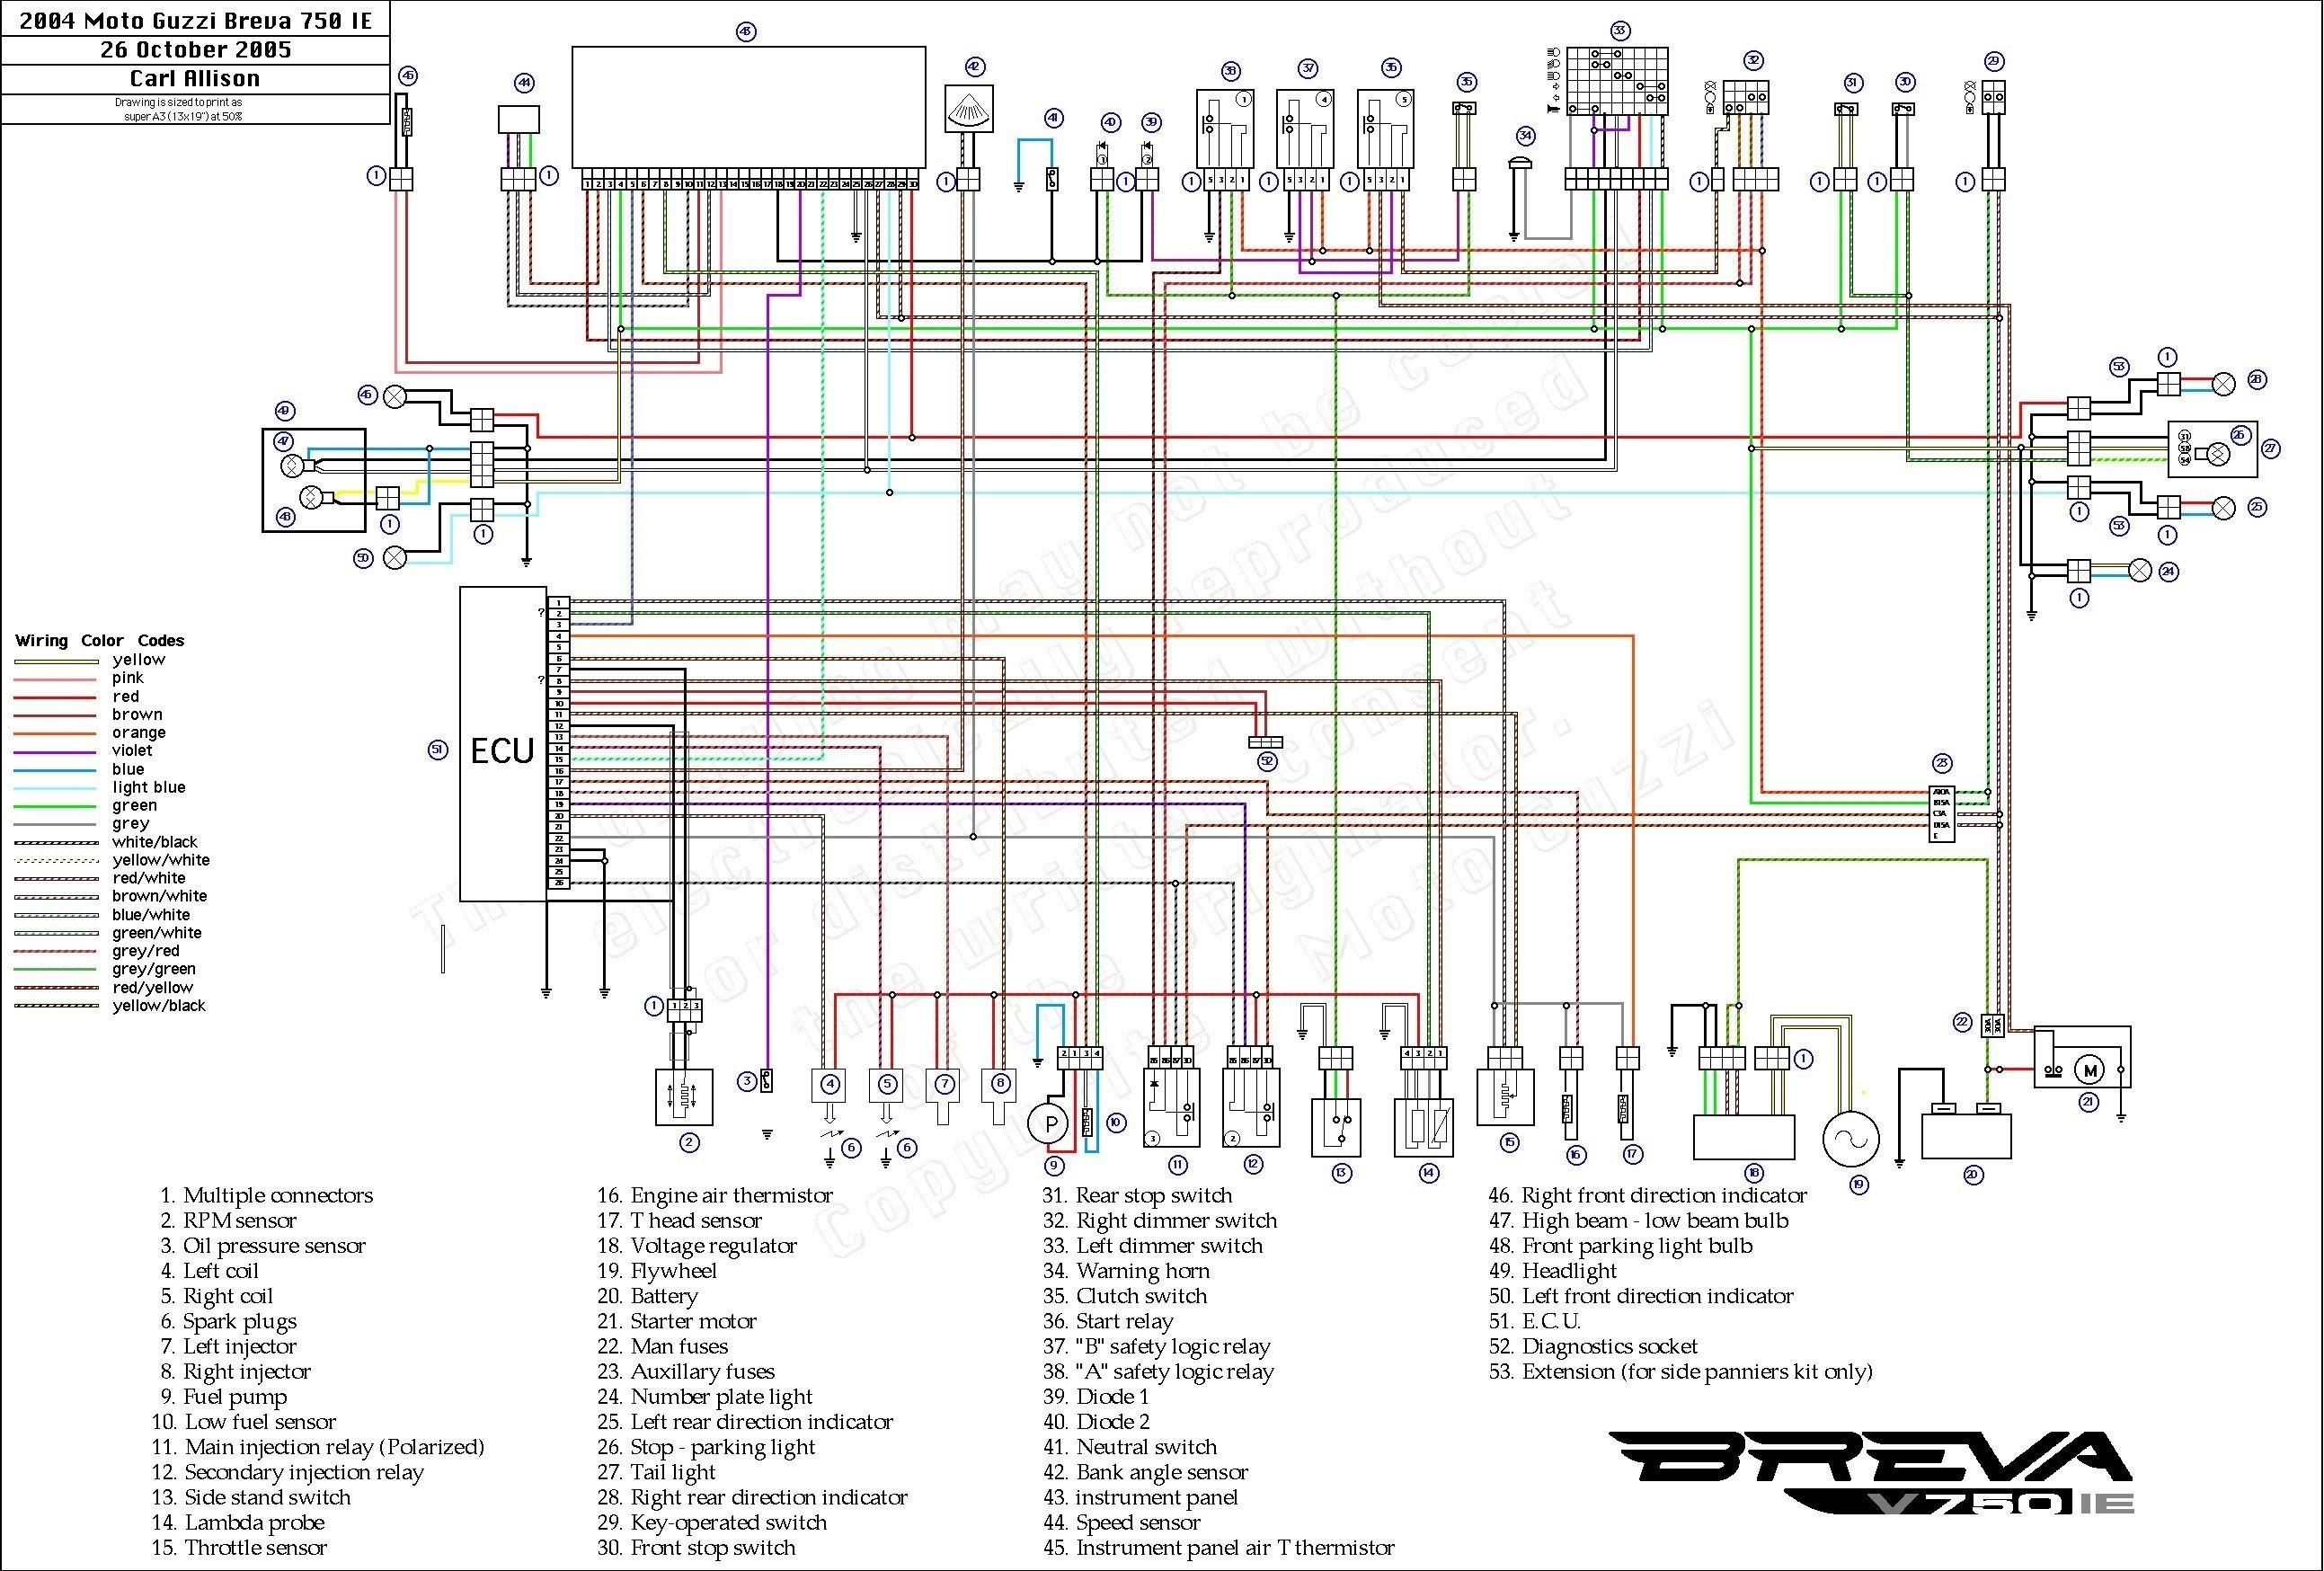 a36e9 jtr 280z v8 wiring diagram digital resources z32 wiring diagram wiring diagram for 280z v8 #7